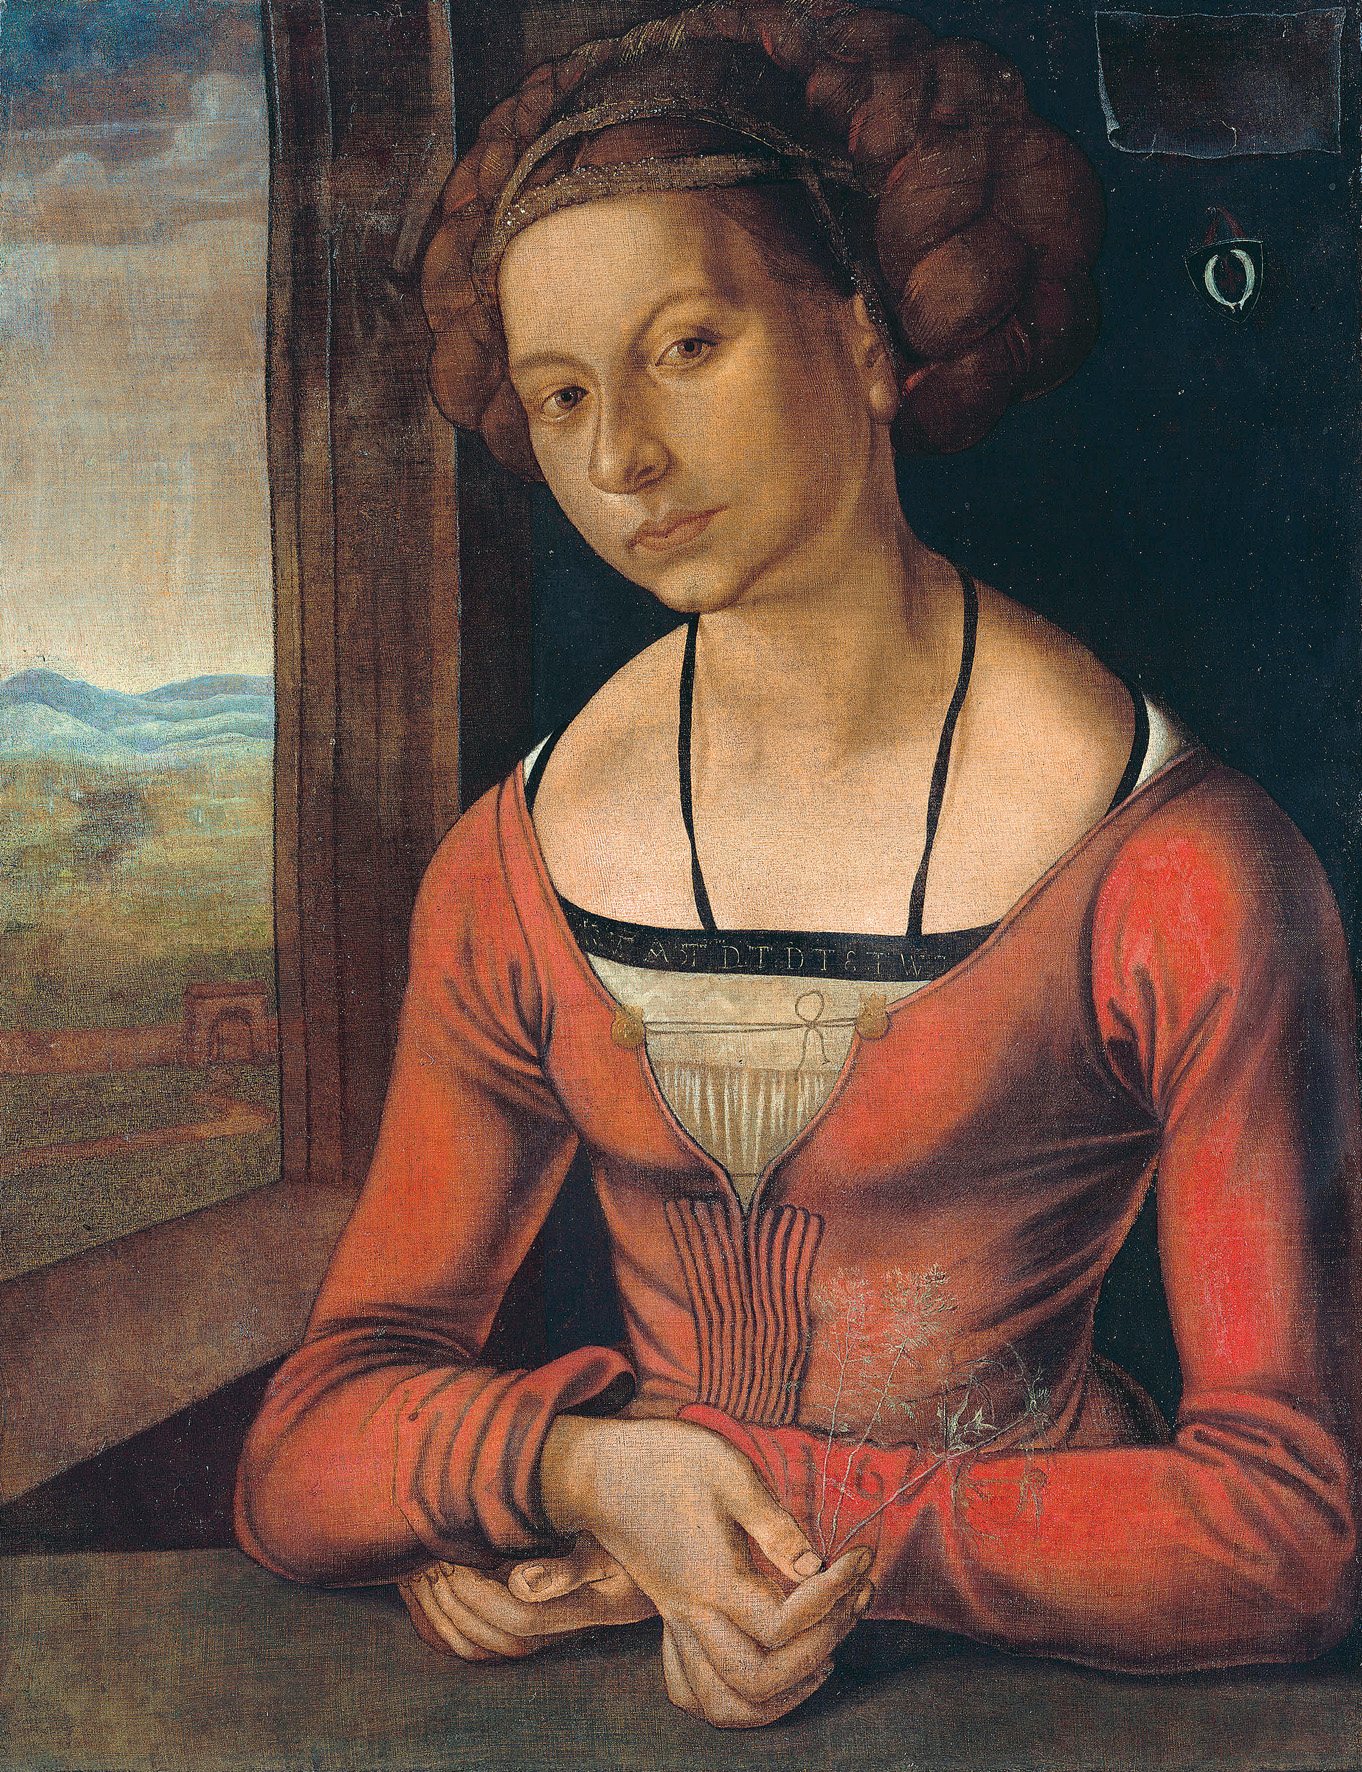 durer albrecht sex cipher ranissance girl with hair up, michaelangelo